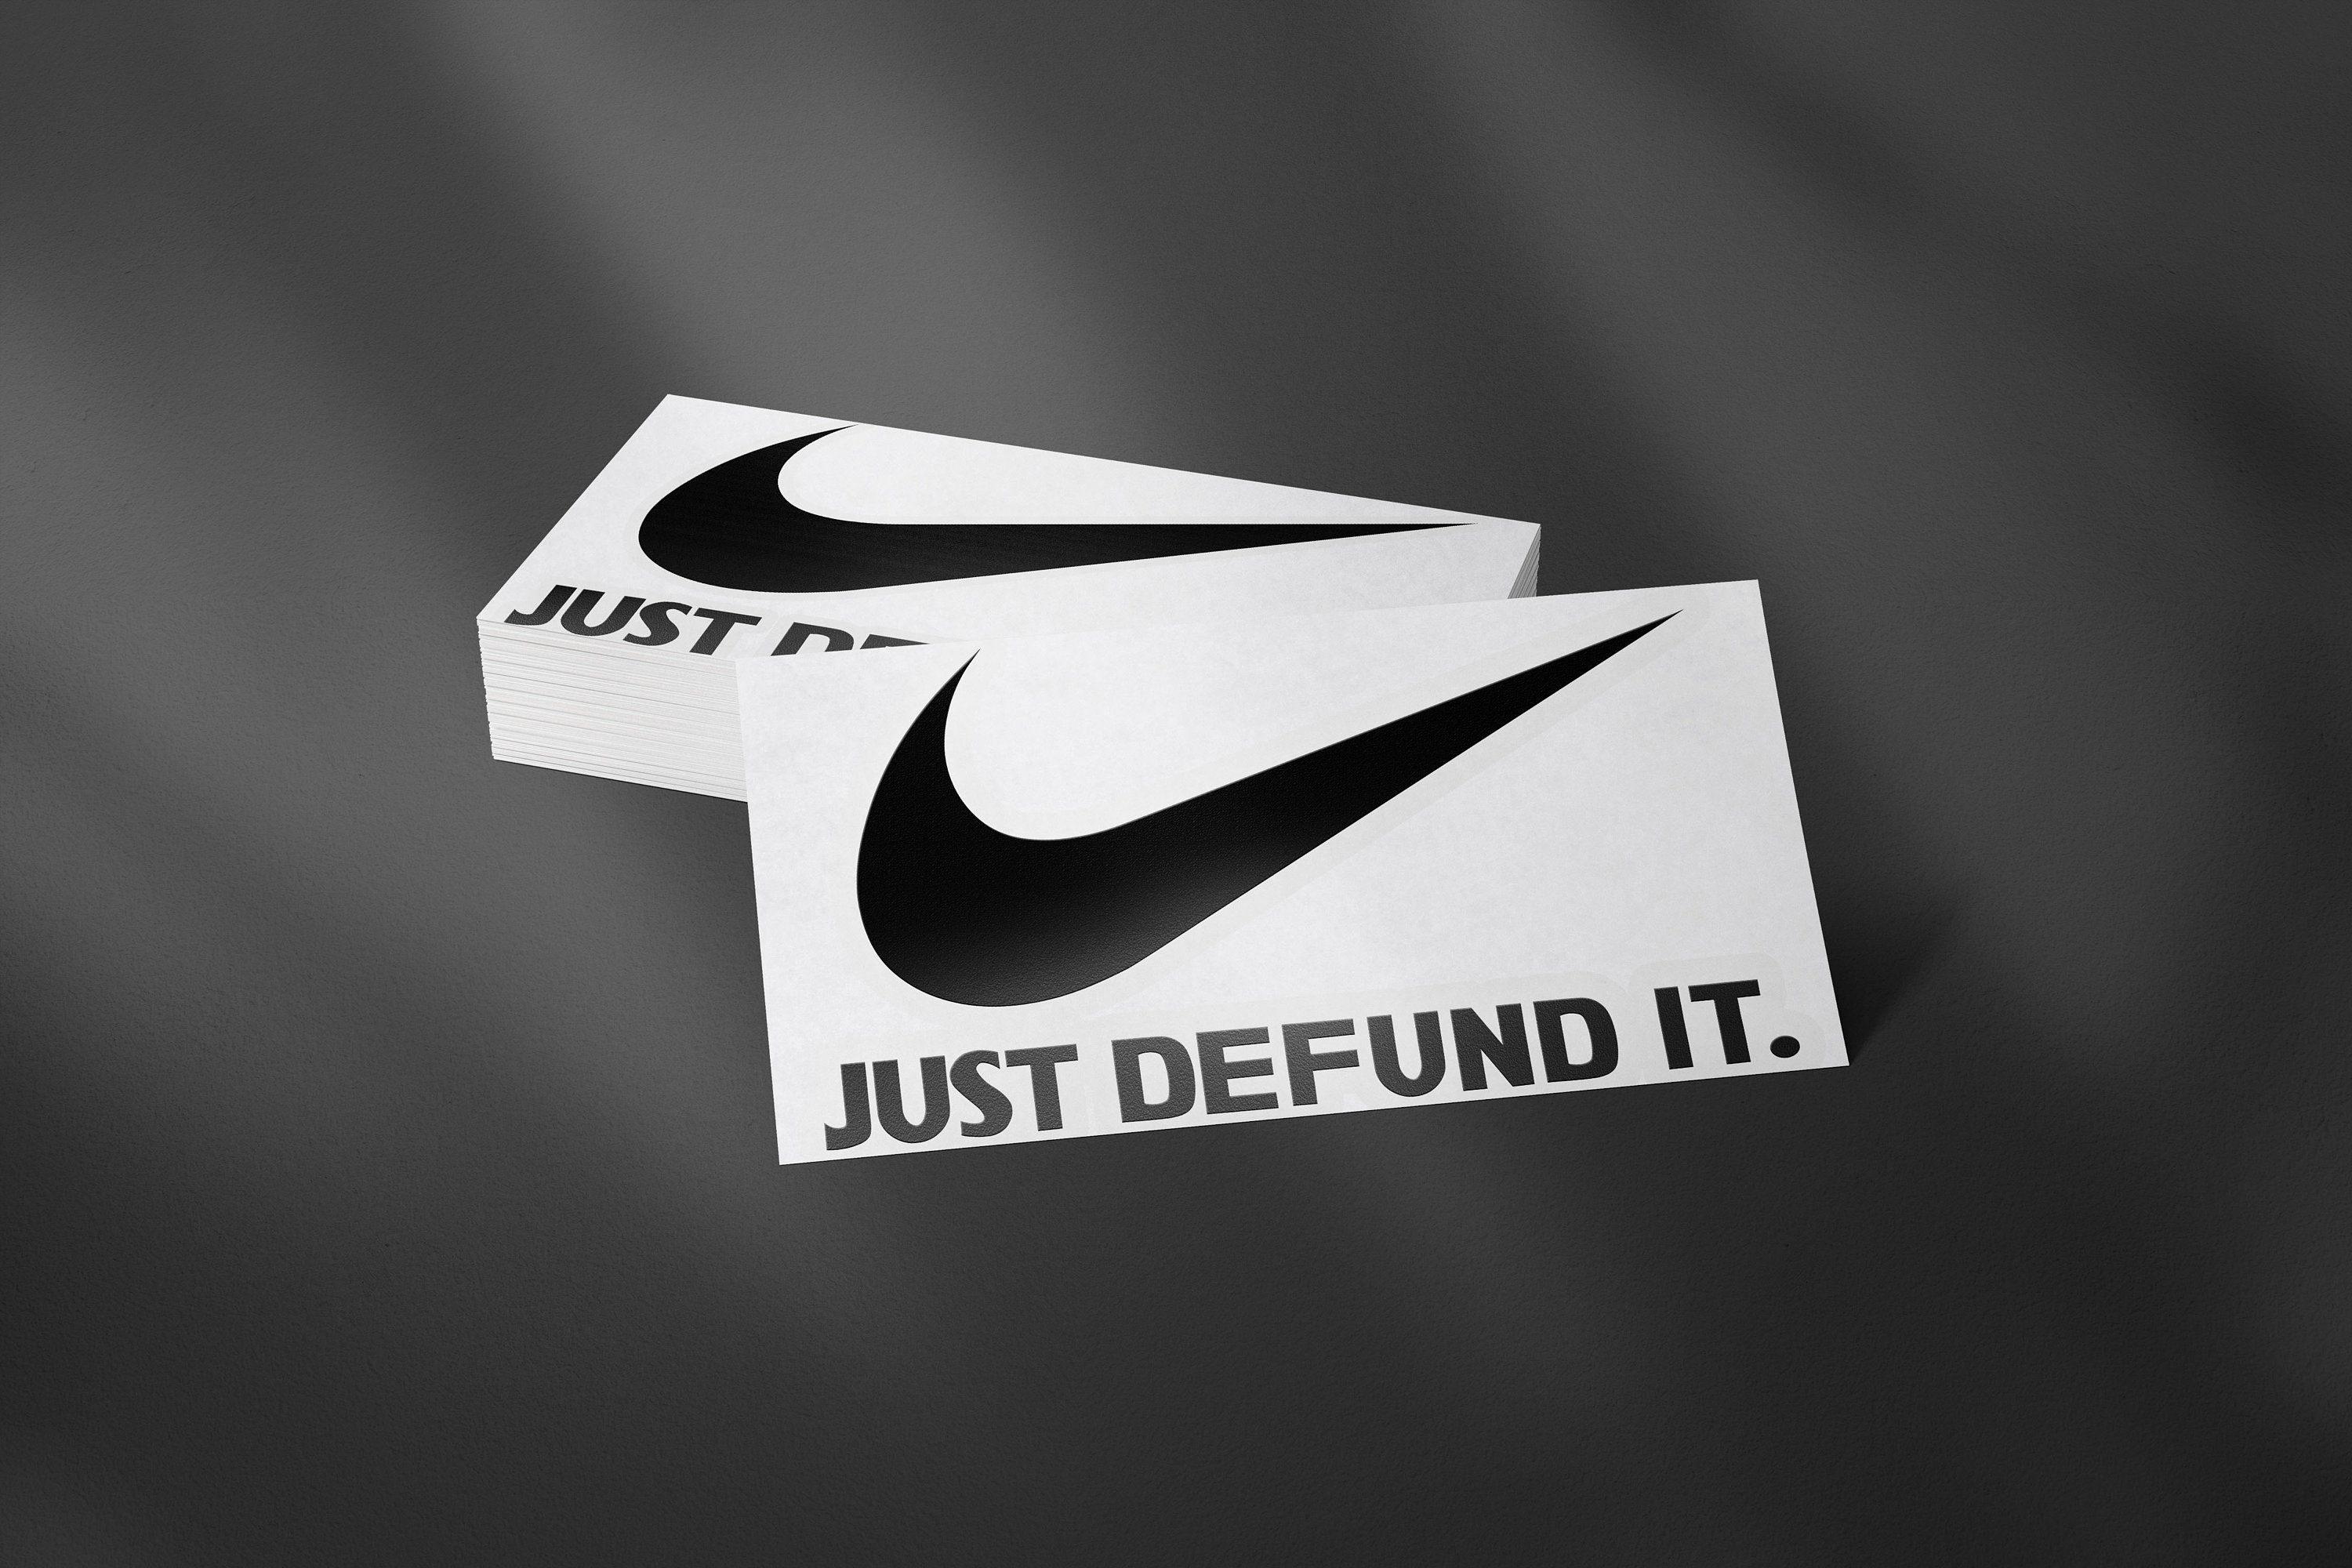 Nike Decal Sticker Black Lives Matter Defund The Police Nike Swoosh Logo Phone Case Decals Hydroflas Phone Case Decals Hydroflask Stickers Custom Tumblers